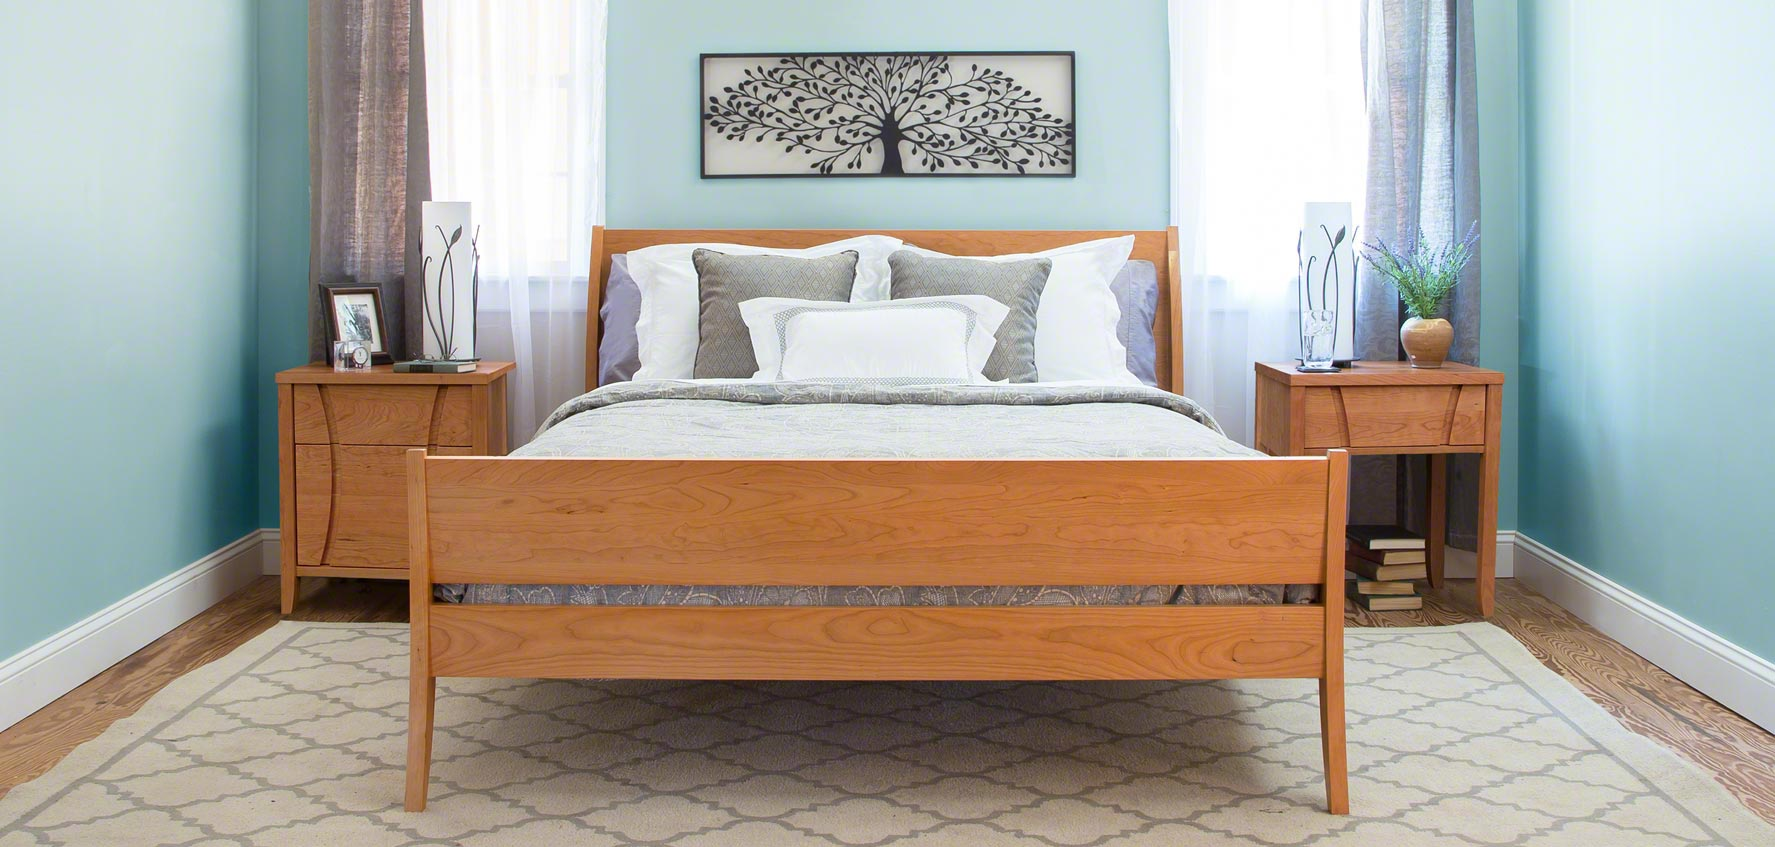 Design Modern Sleigh Bed introducing vermonts modern sleigh bed vermont woods studios the holland is handmade in vermont